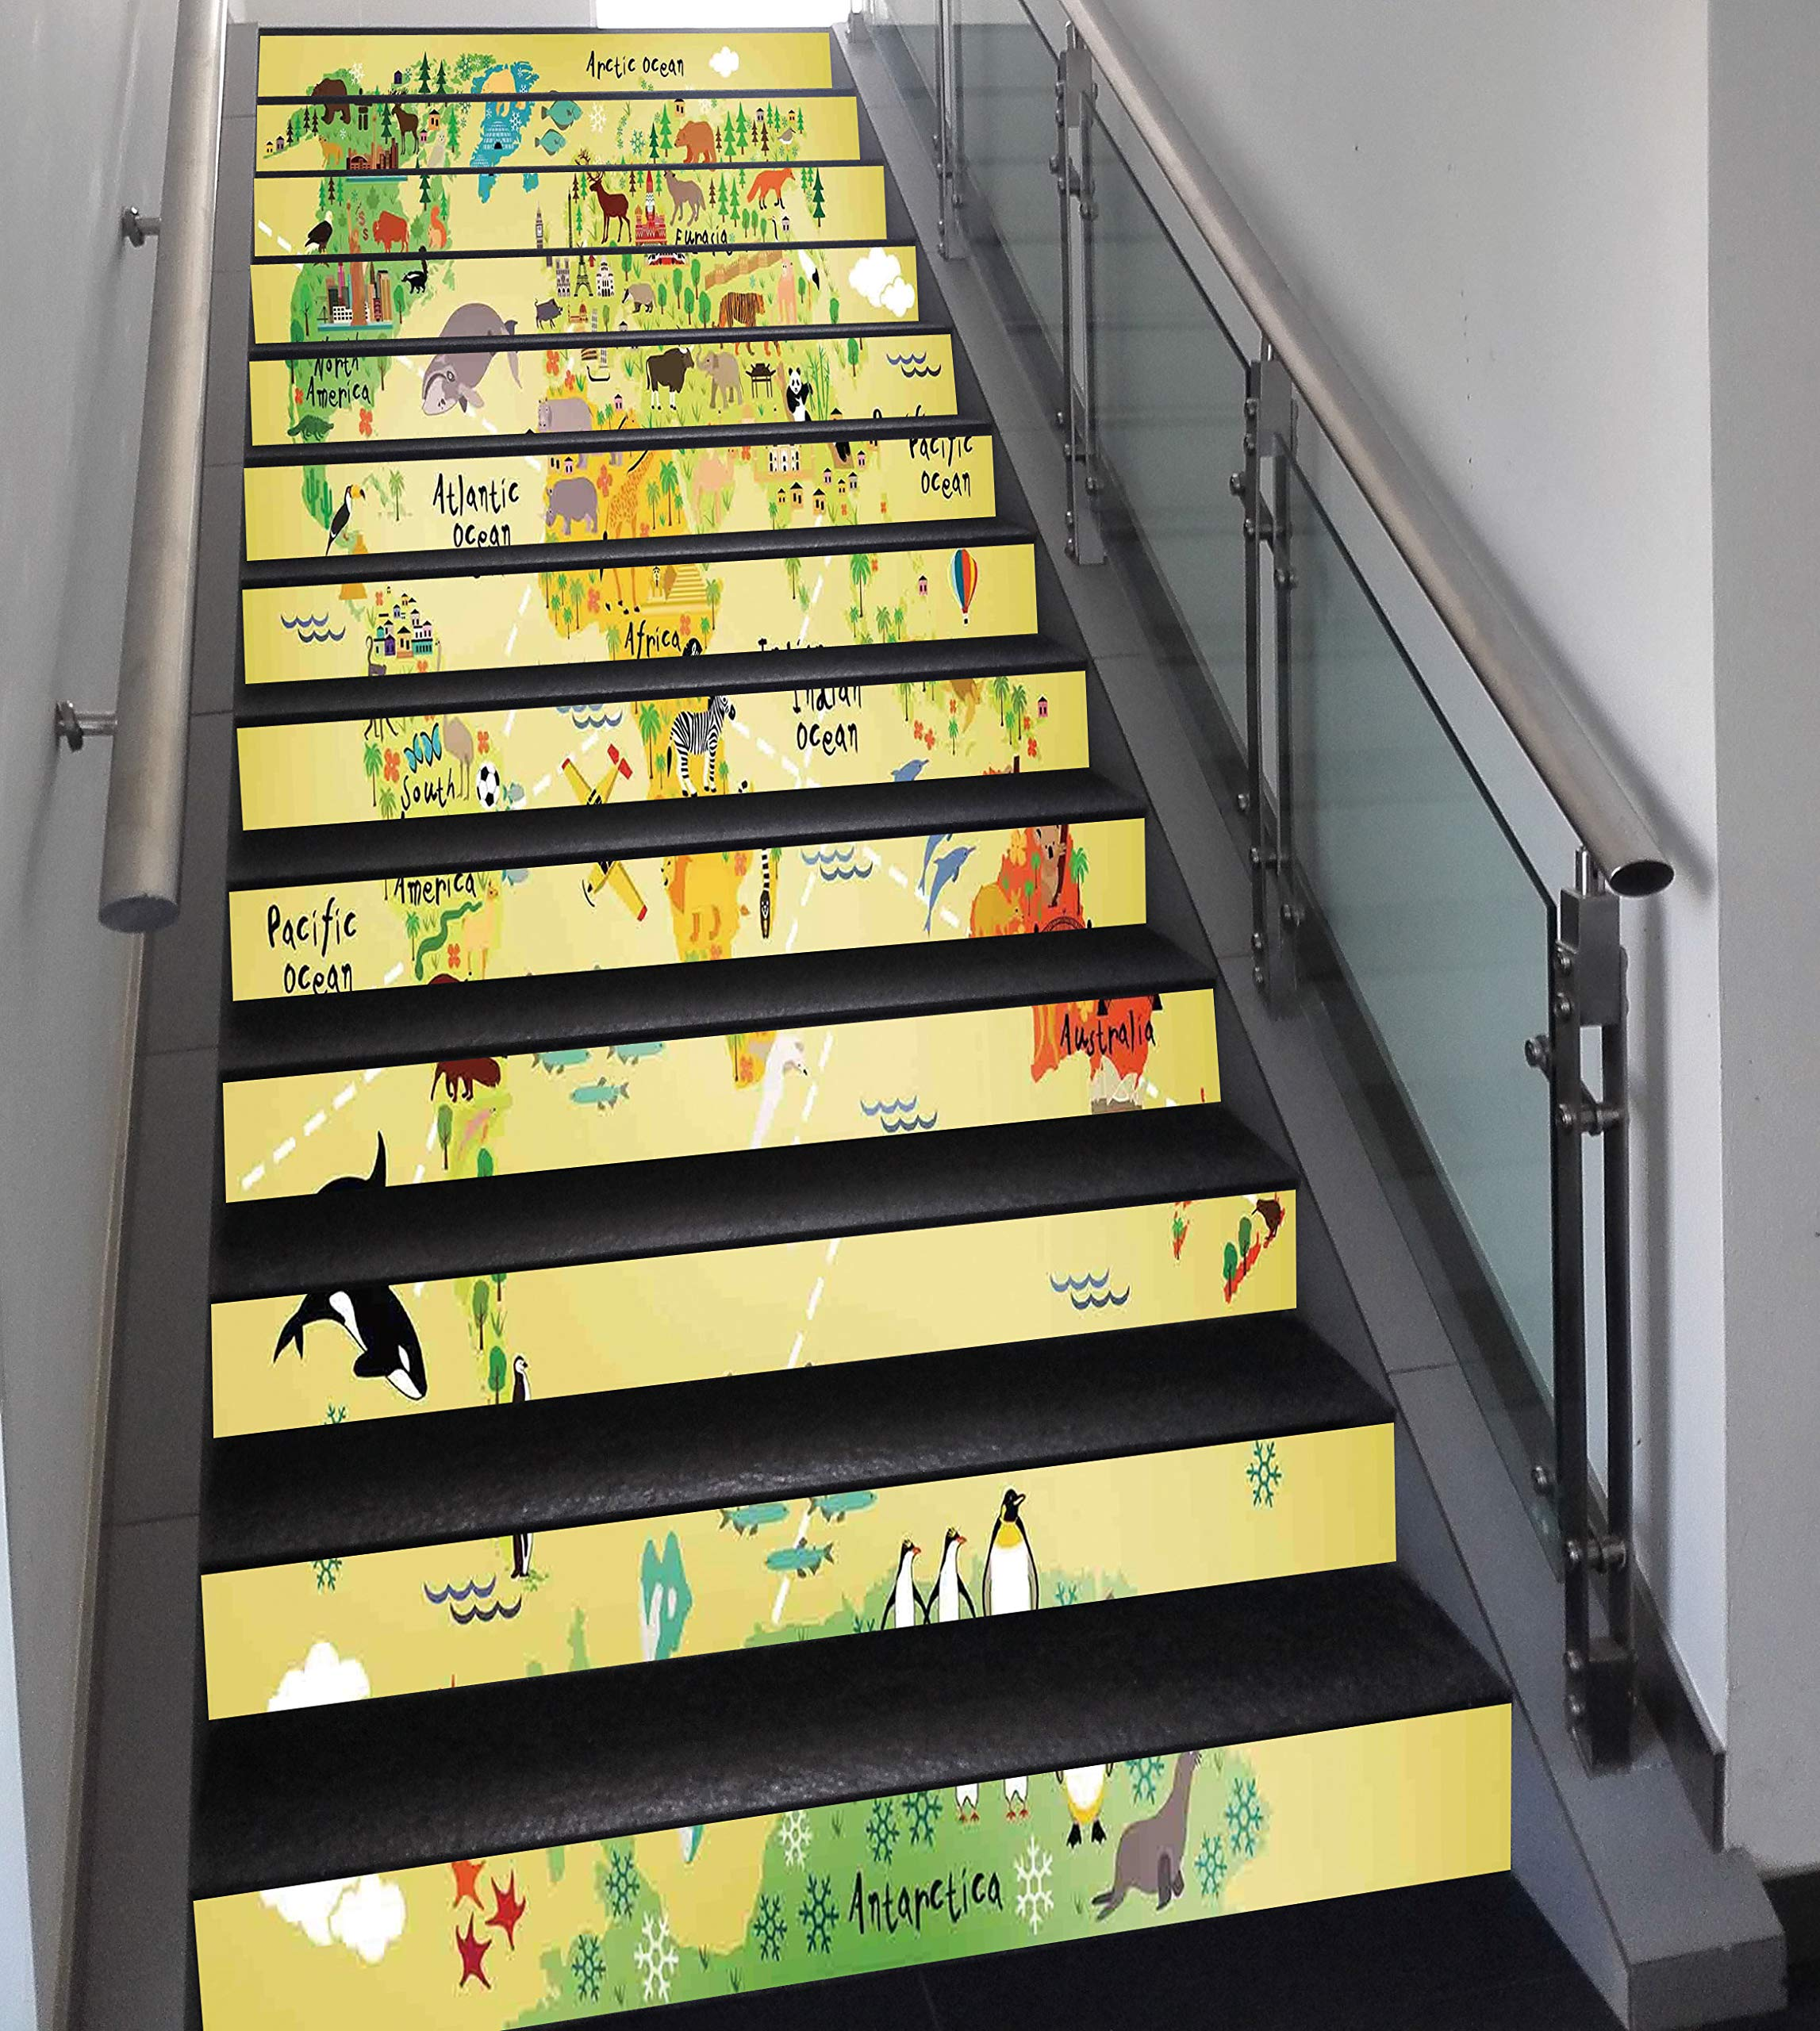 Stair Stickers Wall Stickers,13 PCS Self-Adhesive,Kids Decor,Educational World Map Africa America Penguins Atlantic Pacific Ocean Animals Australia Panda Decorative,Stair Riser Decal for Living Room,